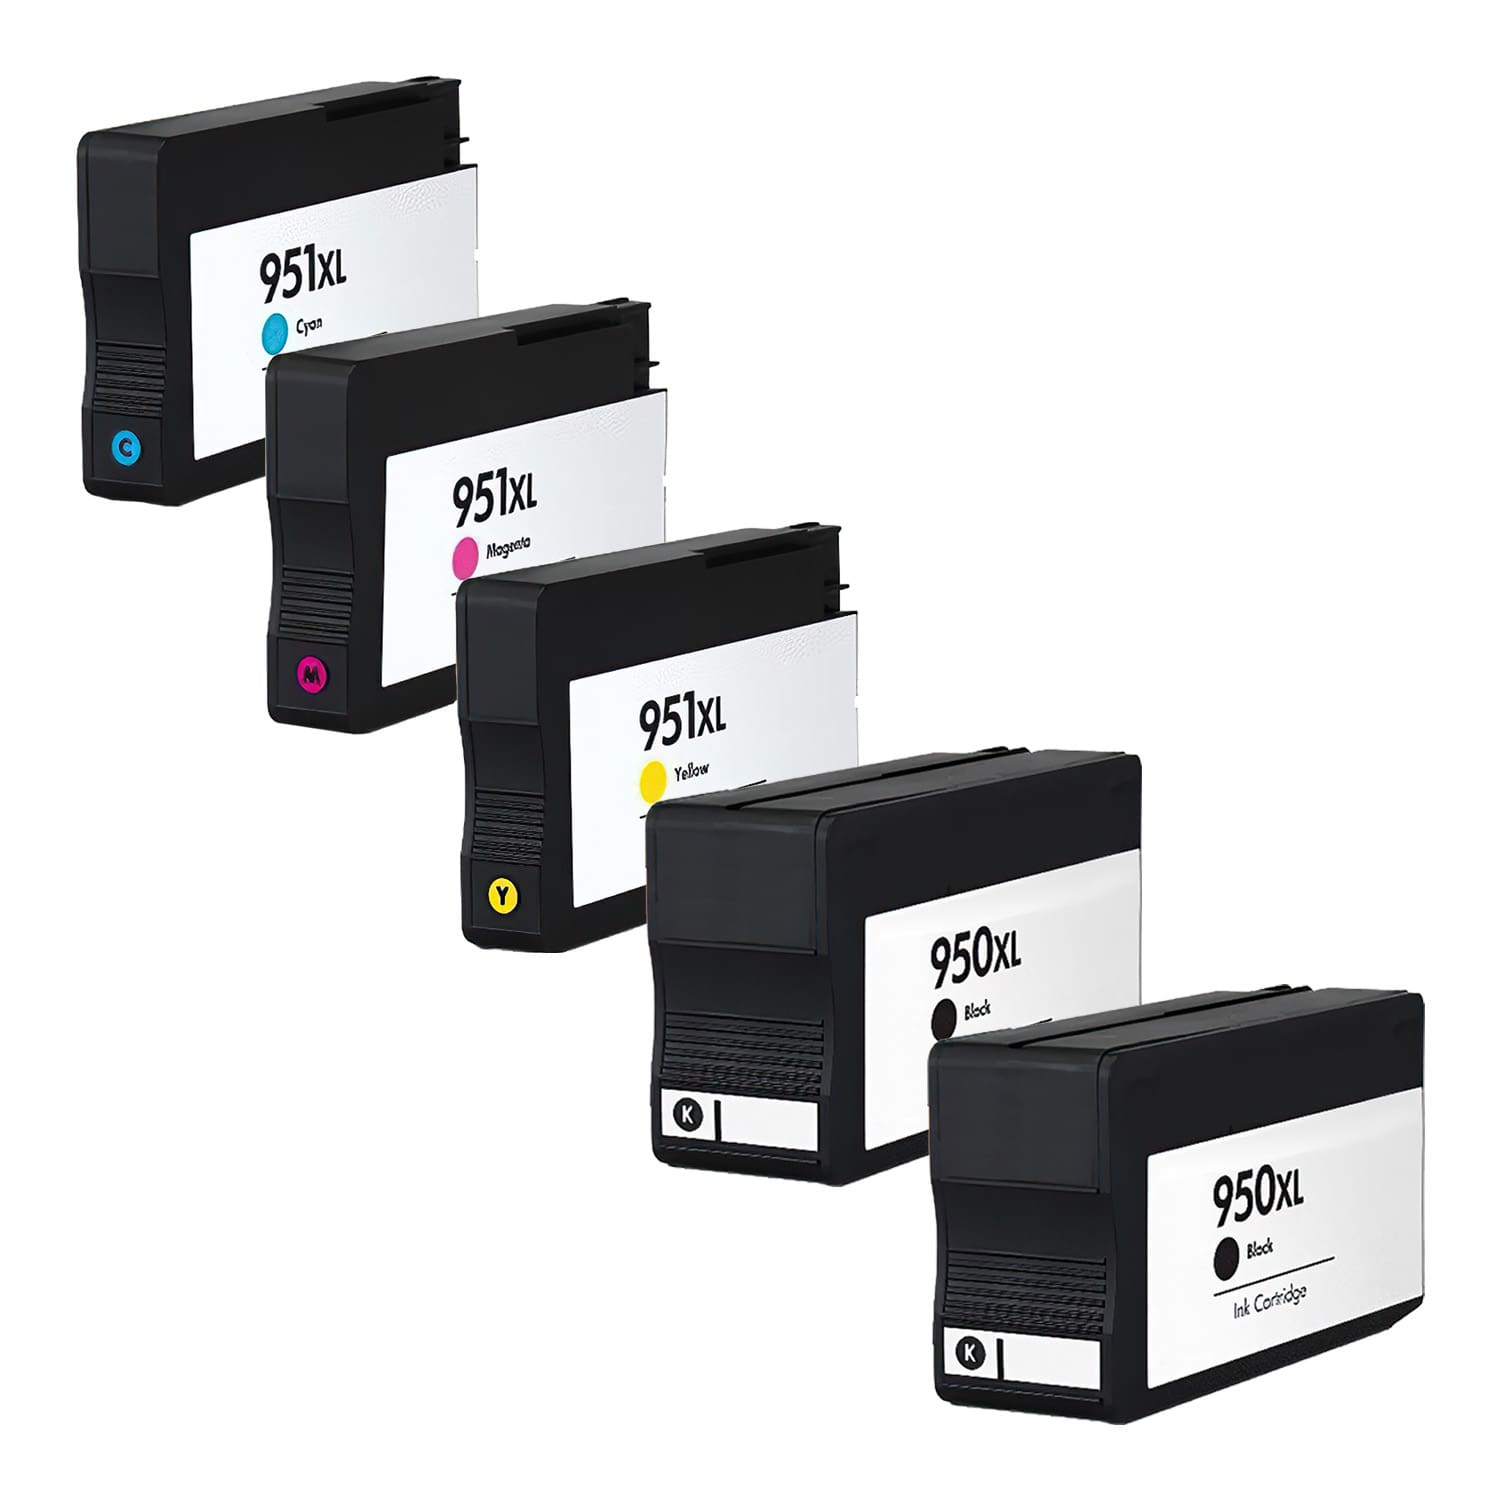 Remanufactured HP 951XL-950XL Inkjet High Capacity Pack - 5 Cartridges